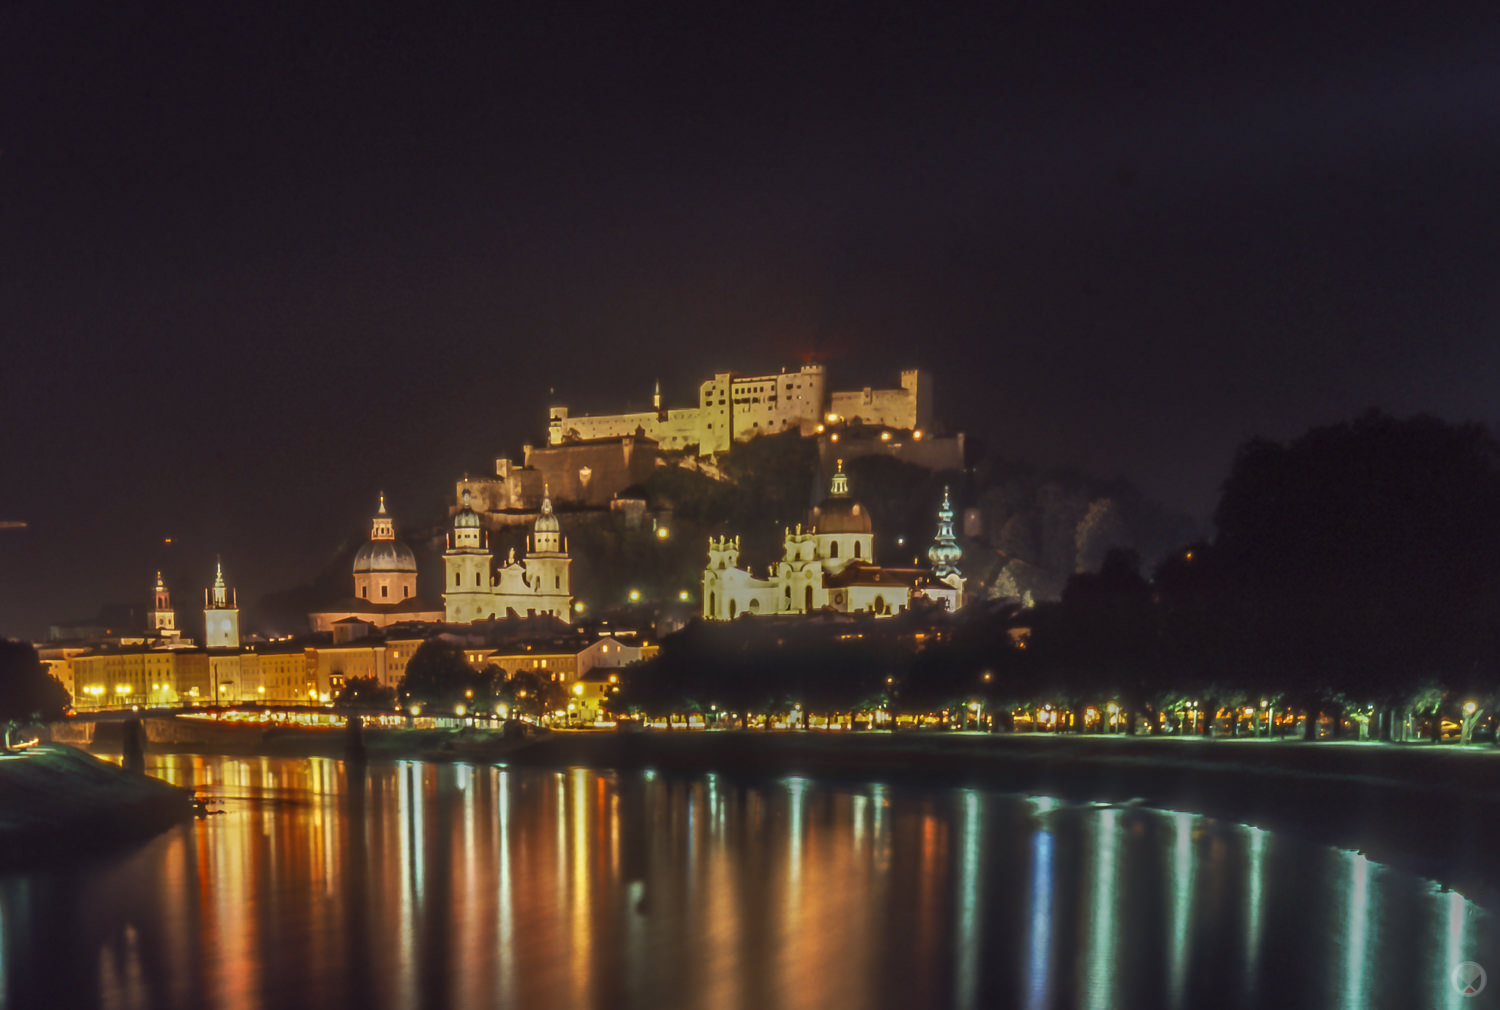 Salzburg at night.